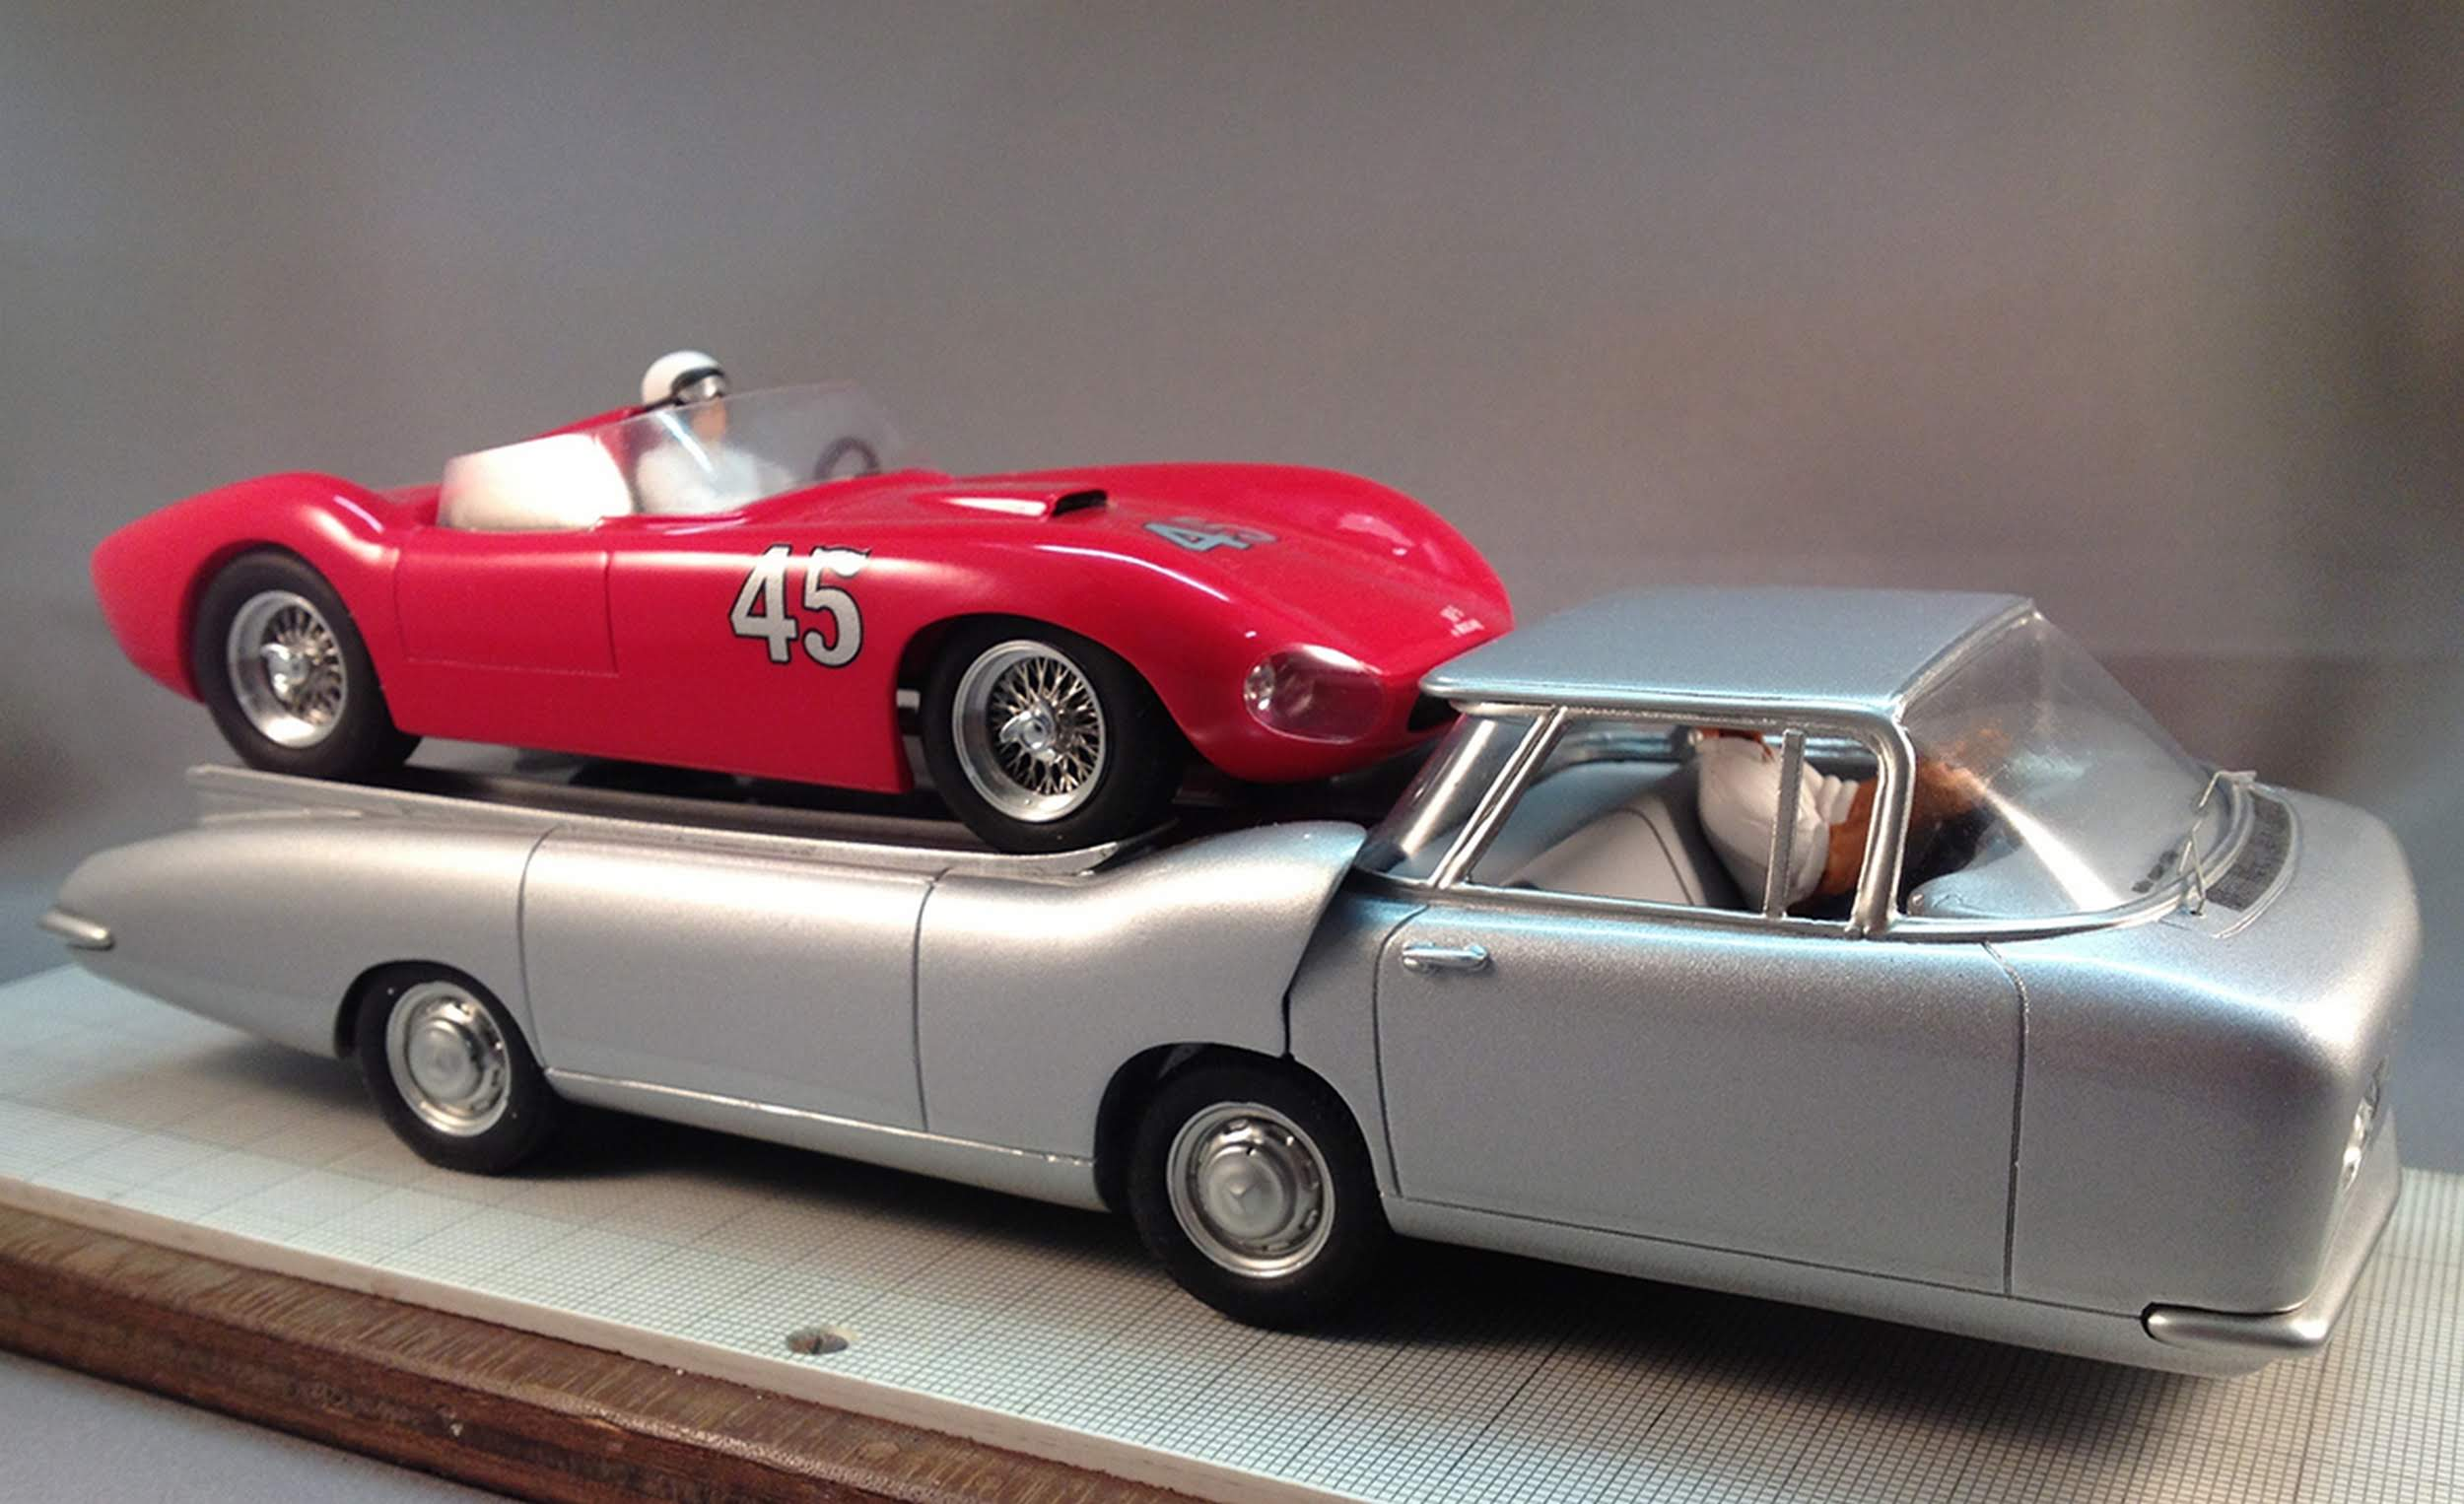 Cheetah Transporter scale model with car